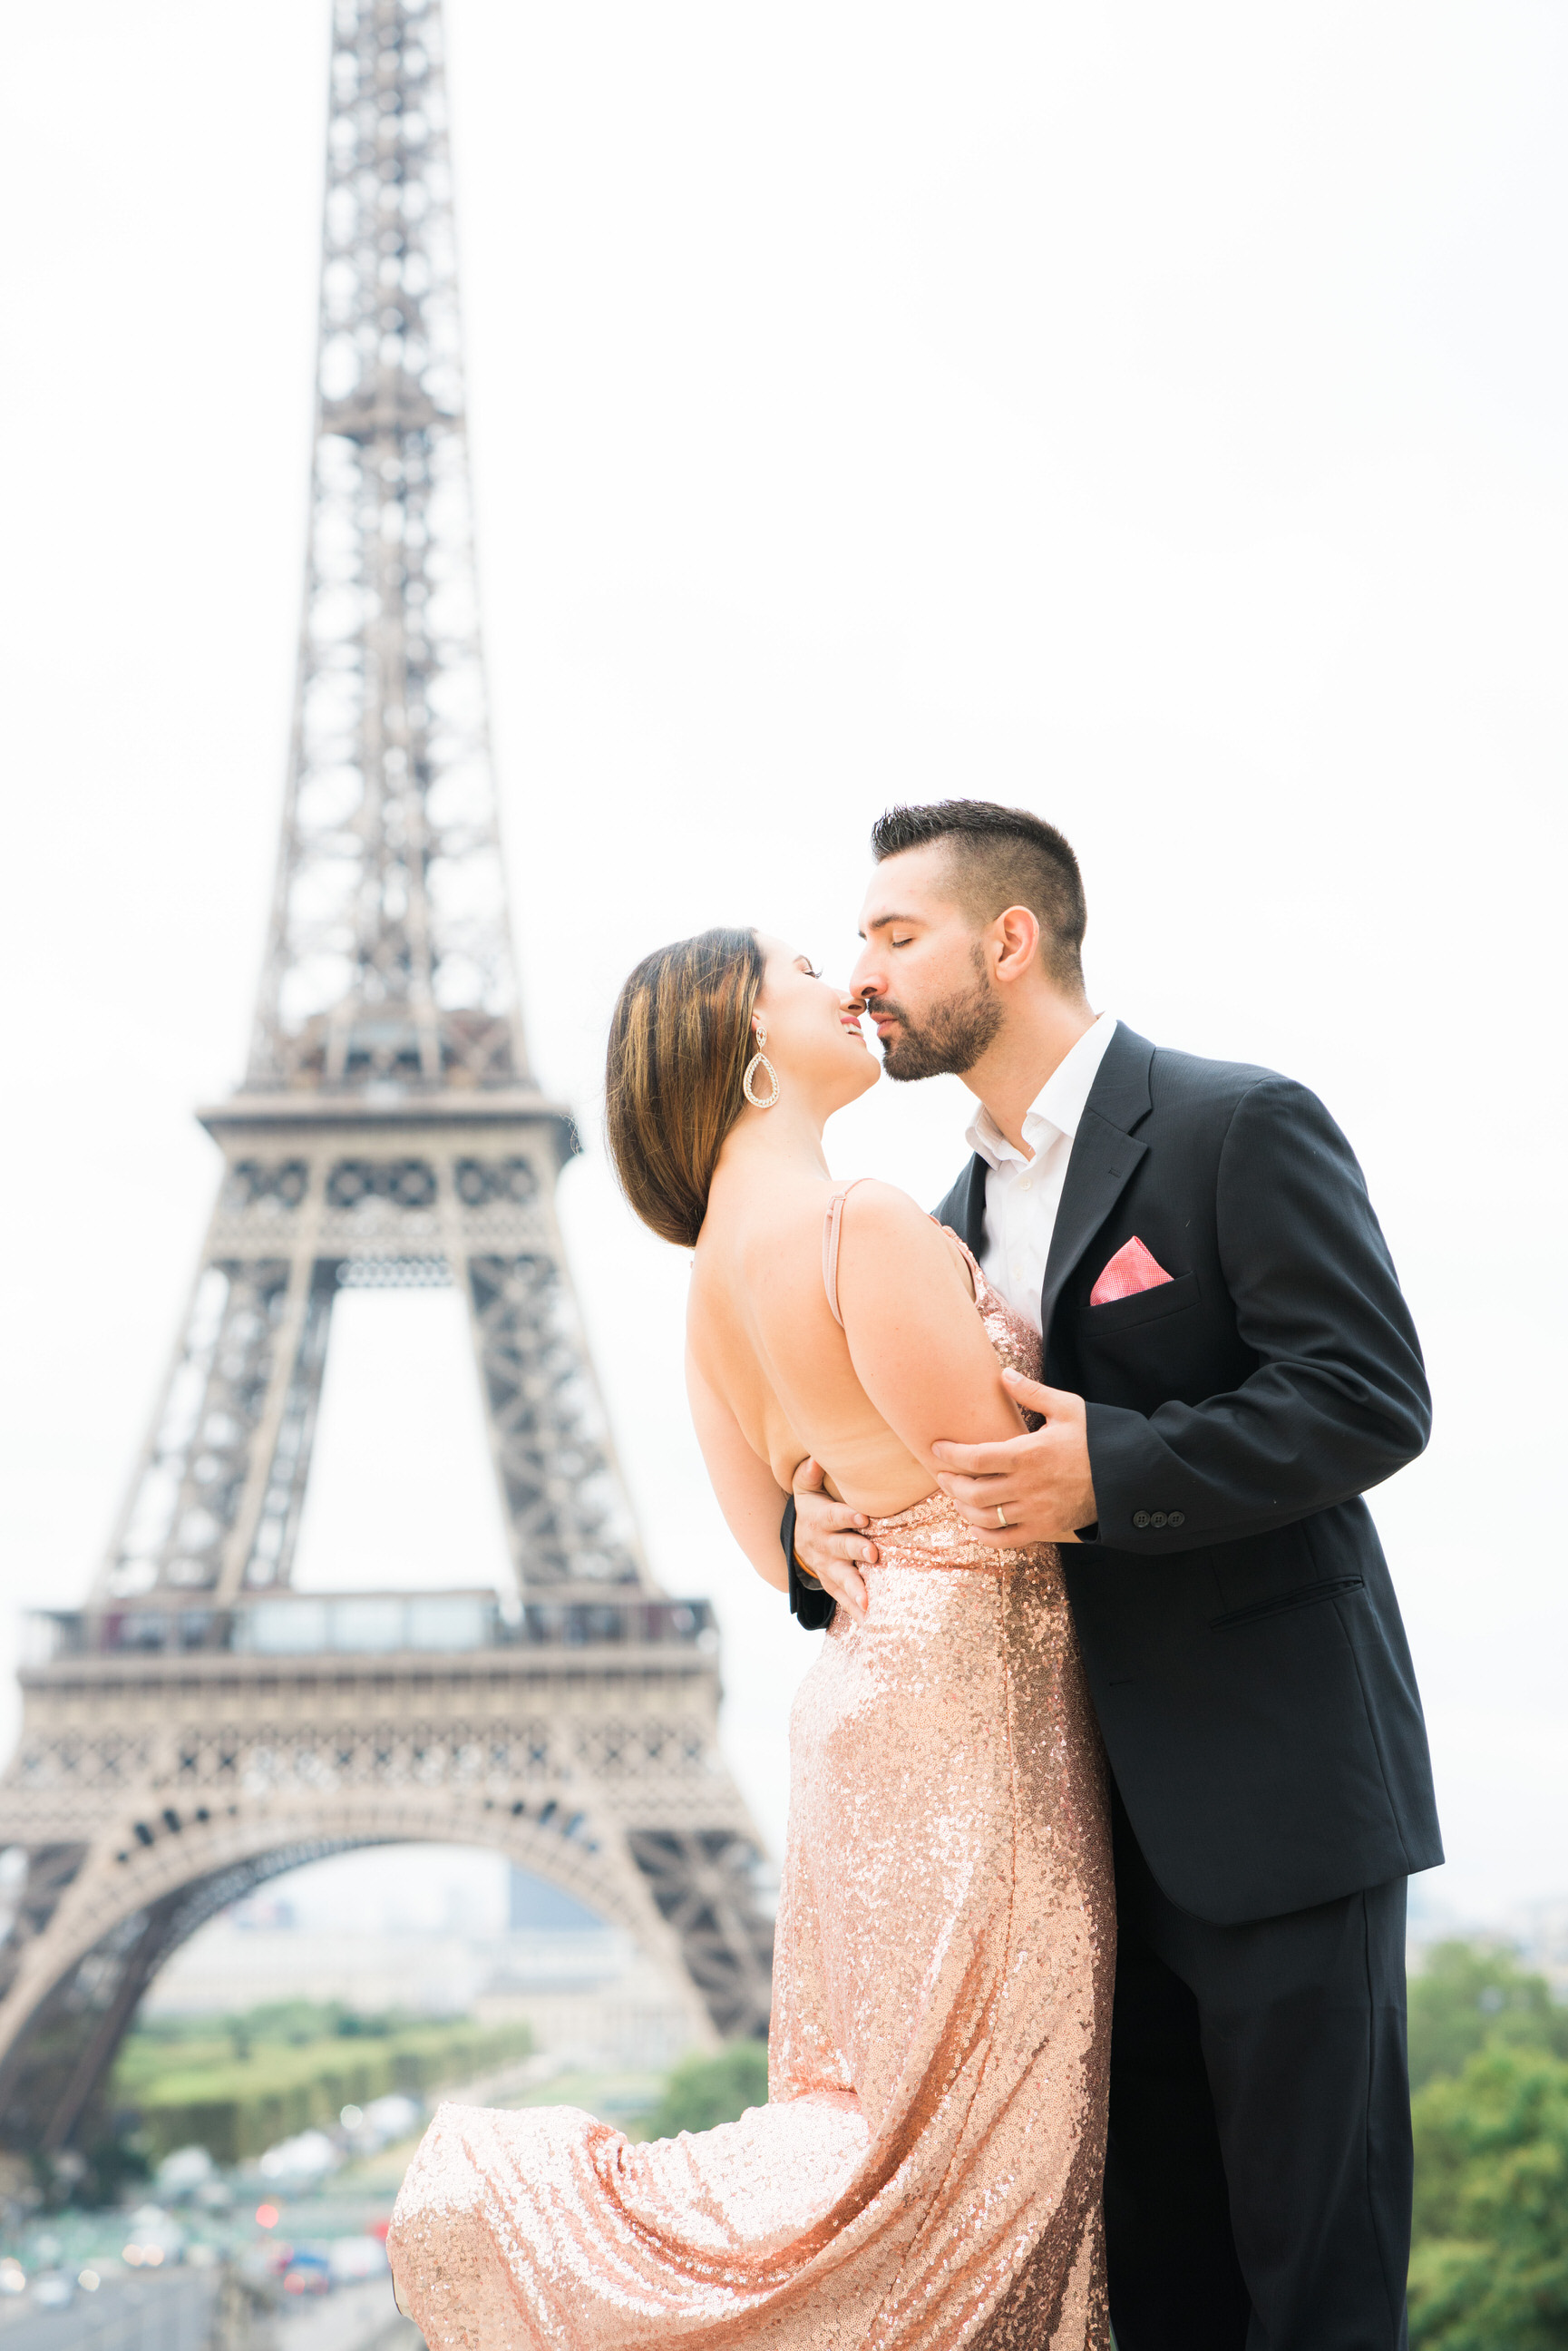 Exquisite anniversary photo shoot at the Eiffel Tower